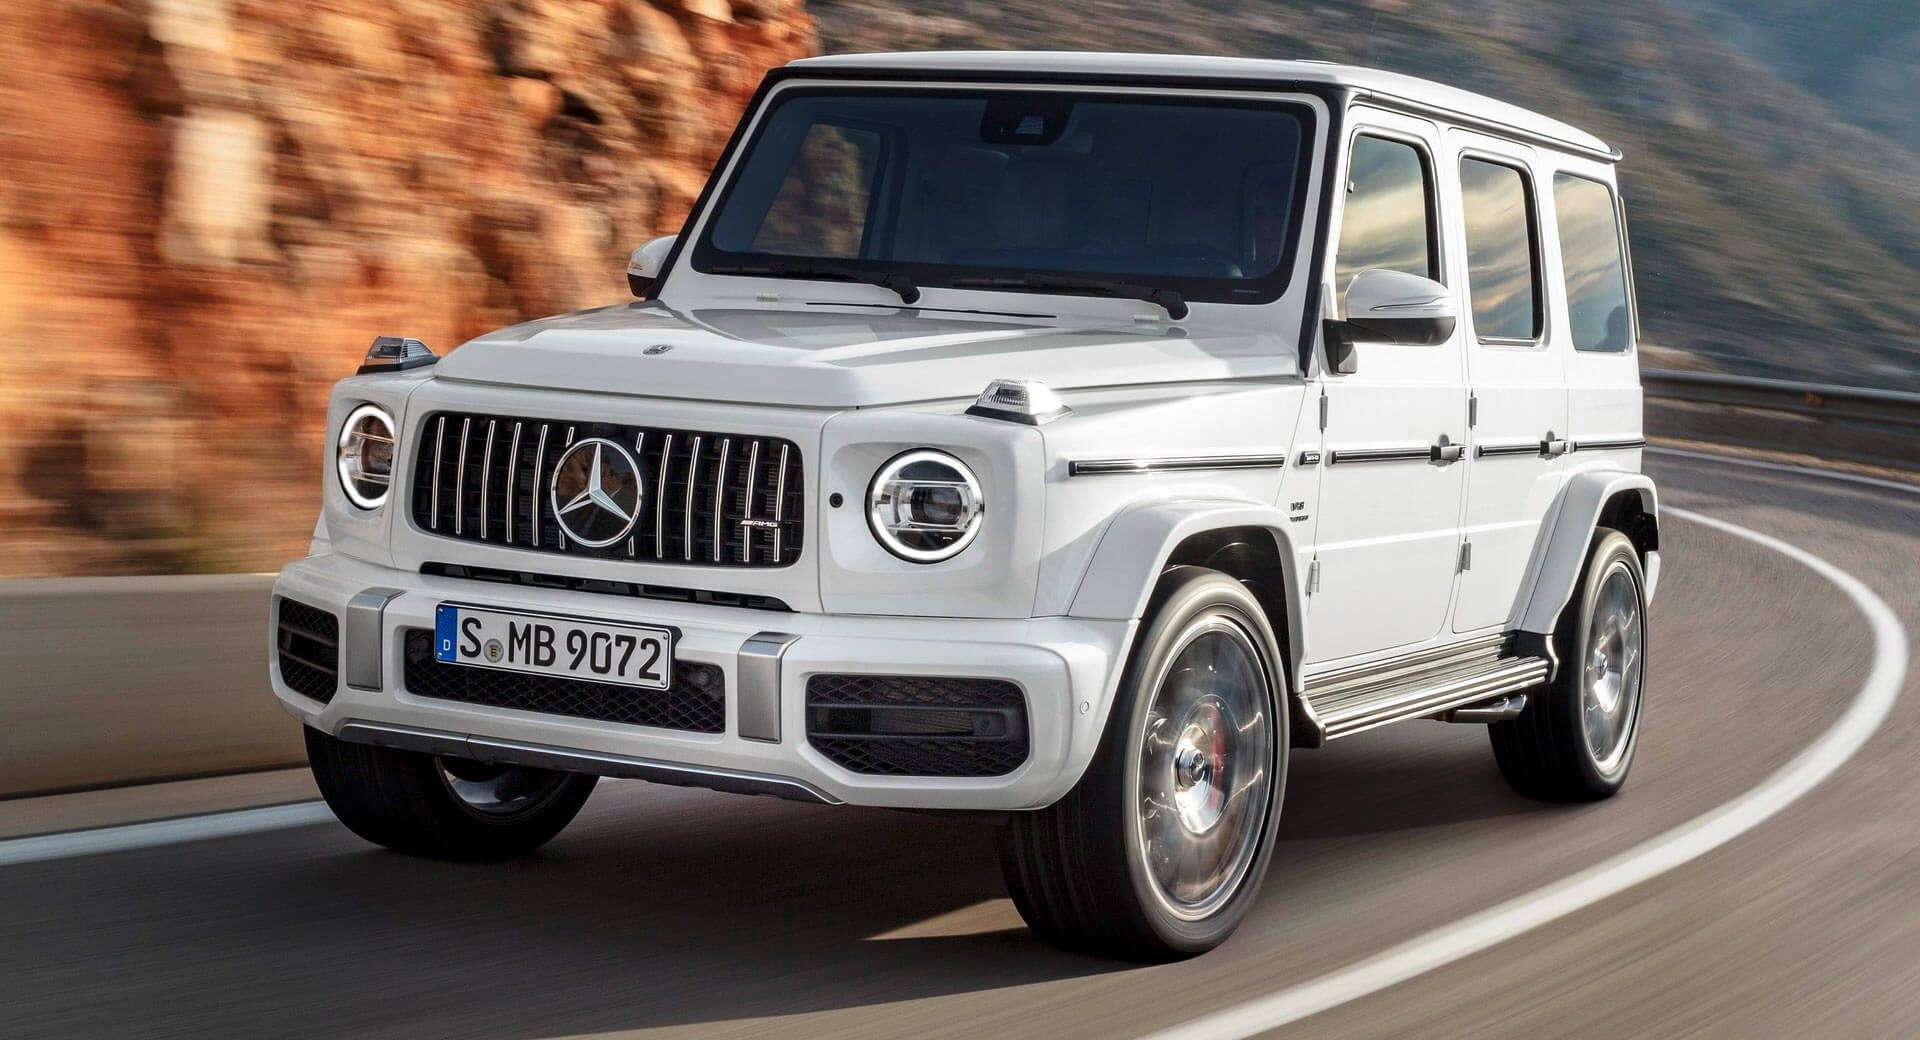 New Mercedes Amg G63 On Uk Shores In July From 143 305